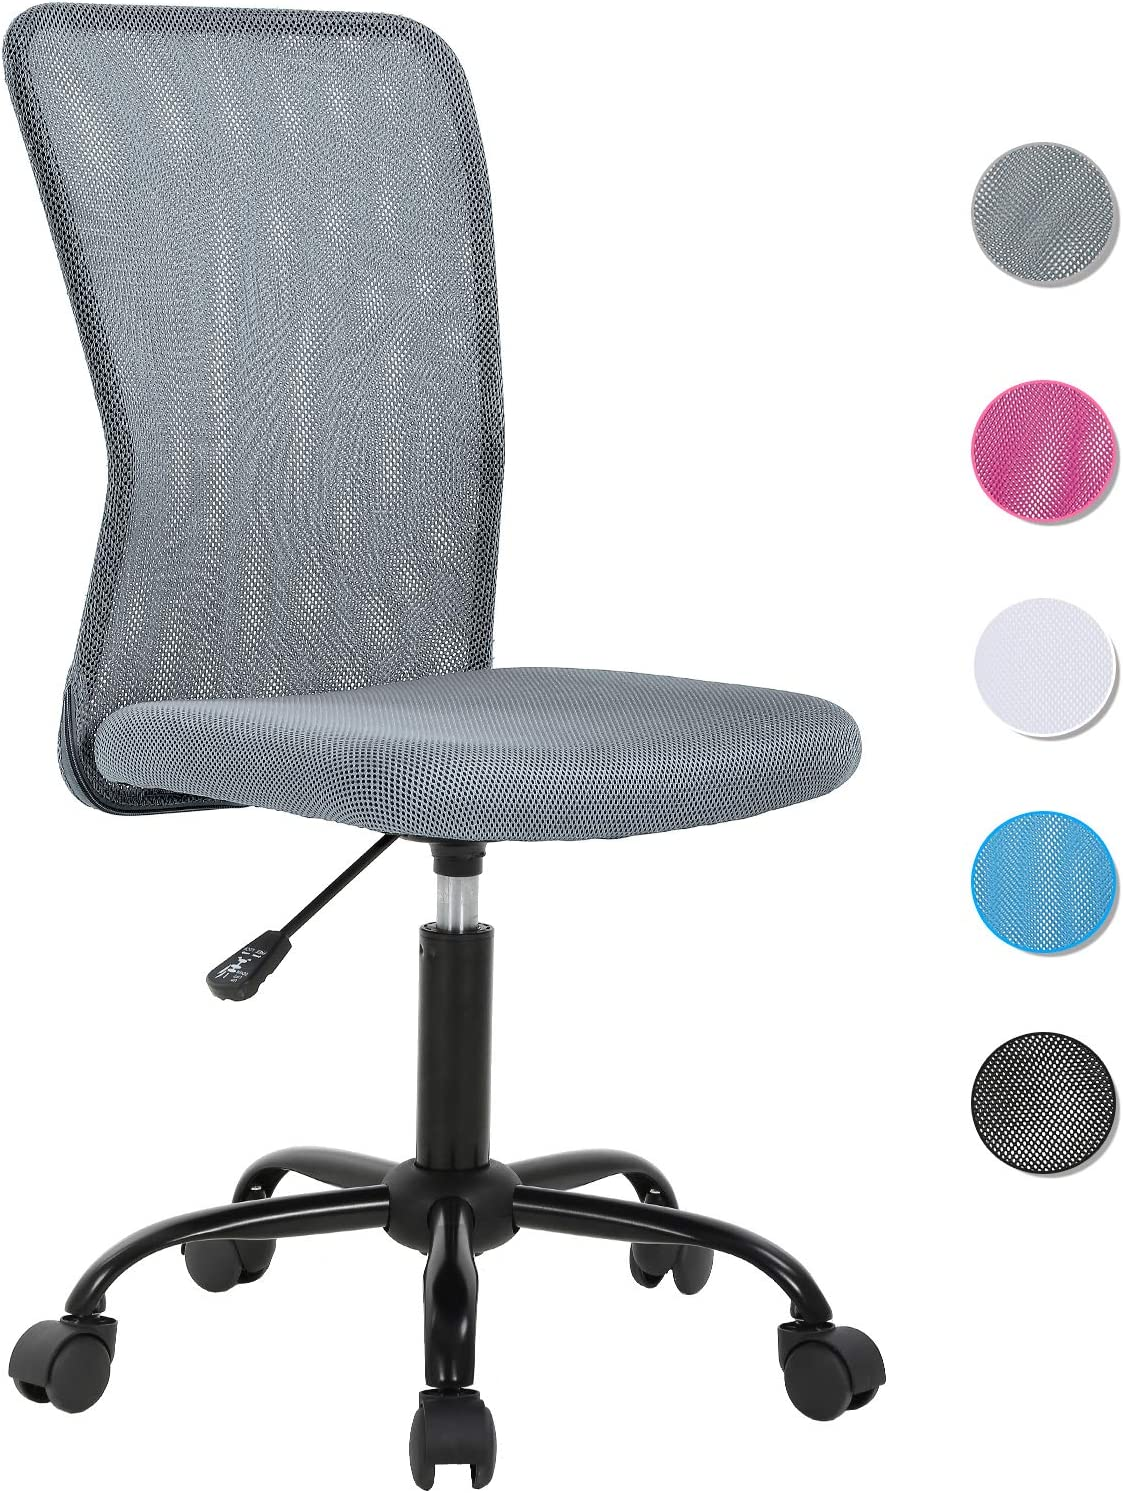 Ergonomic Office Chair Mesh Computer Chair Small Desk Chair Back Support Lumbar Support Modern Executive Adjustable Chair Mid Back Task Rolling Swivel Chair with Wheels Armless (Grey)